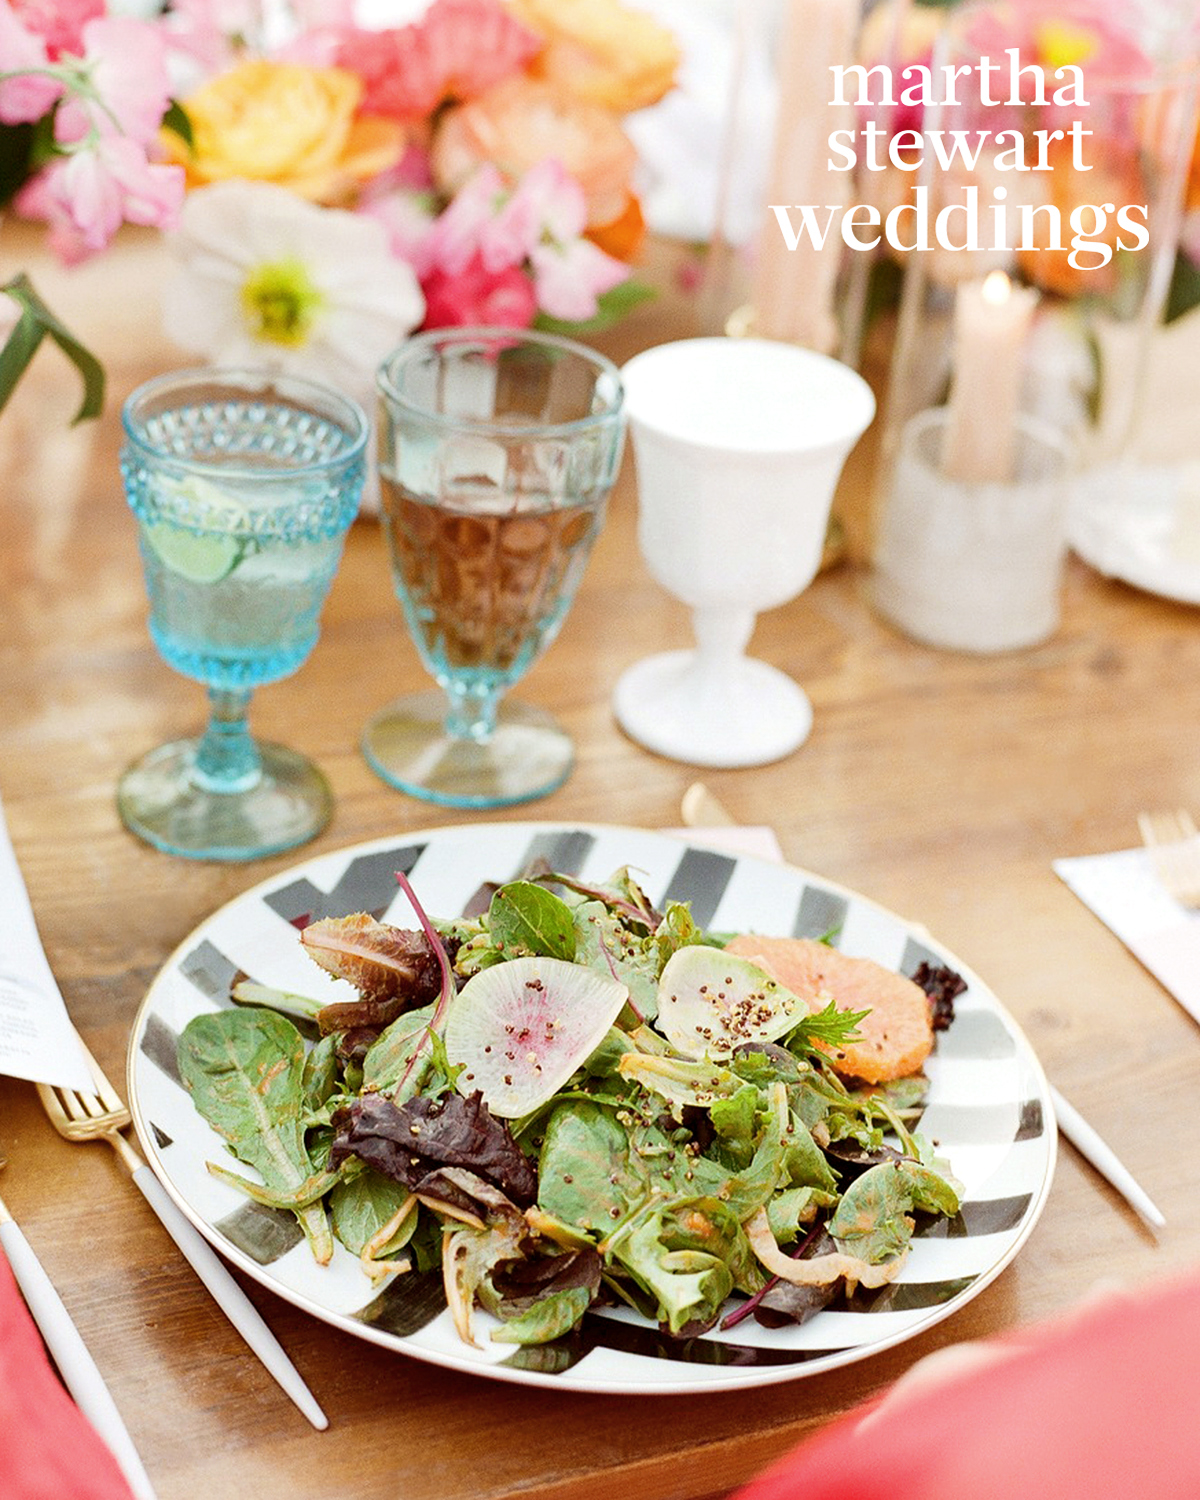 samira wiley lauren morelli wedding salad